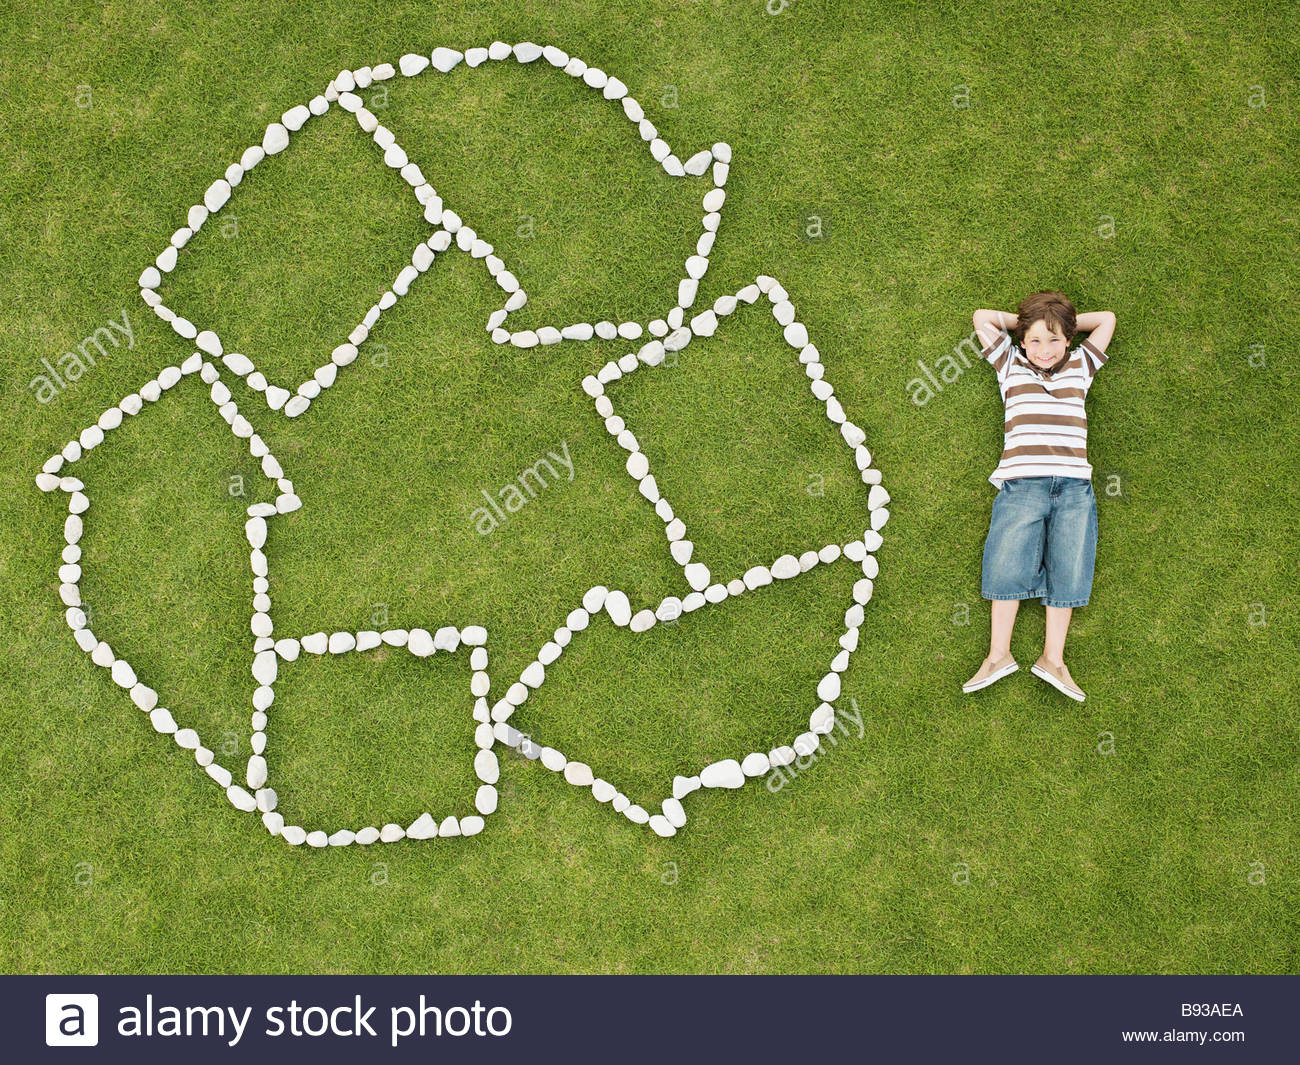 Boy relaxing near recycling symbol made of rocks - Stock Image